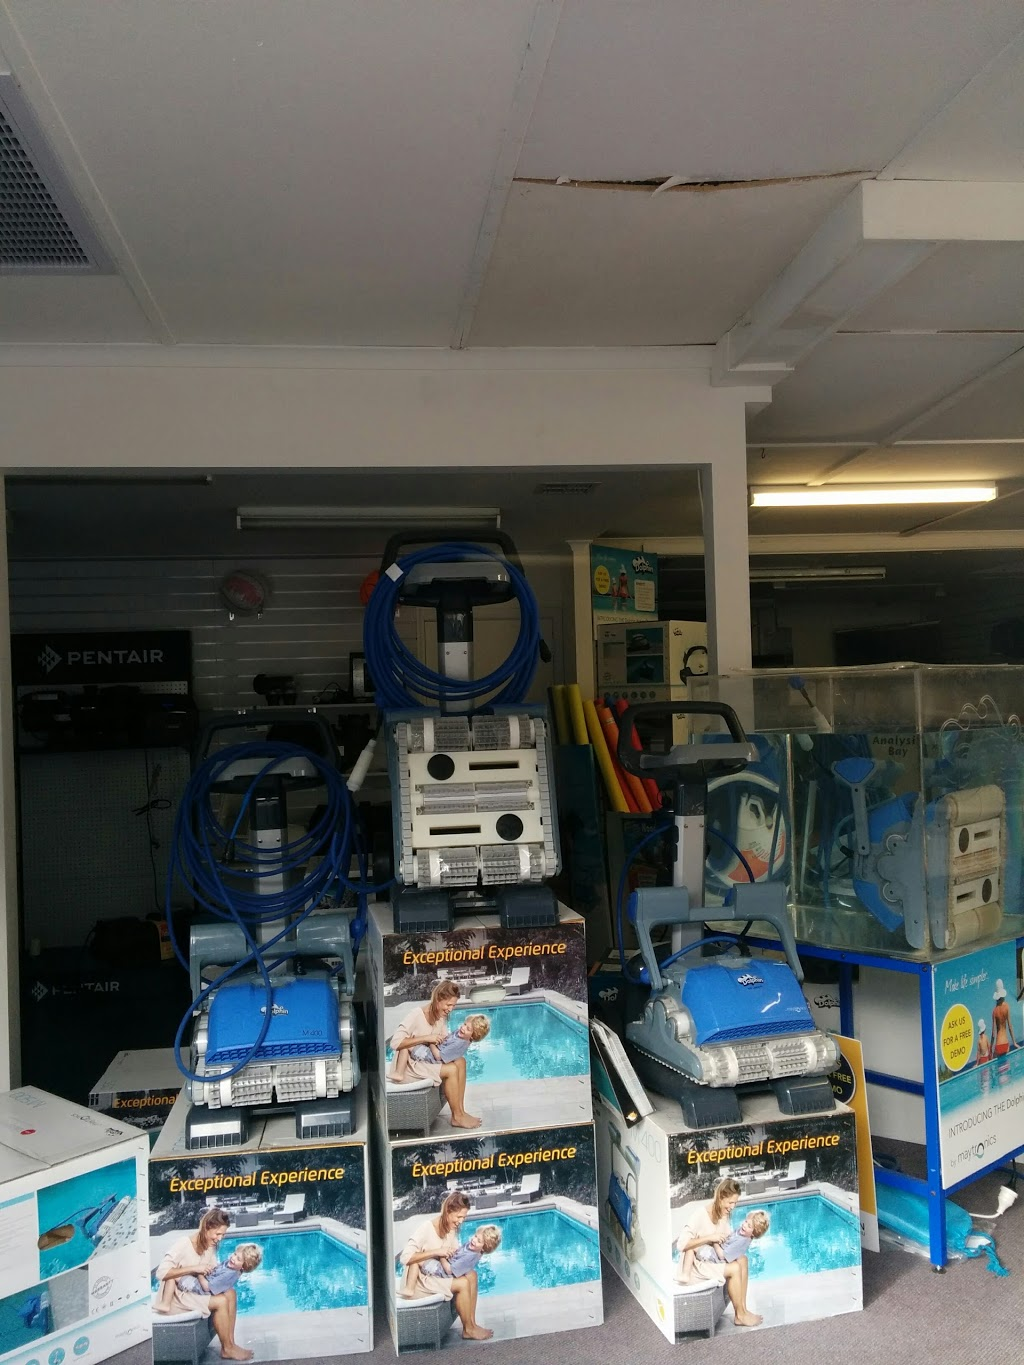 Poolmart | store | 185/189 Harrington St, Hobart TAS 7000, Australia | 0362345800 OR +61 3 6234 5800